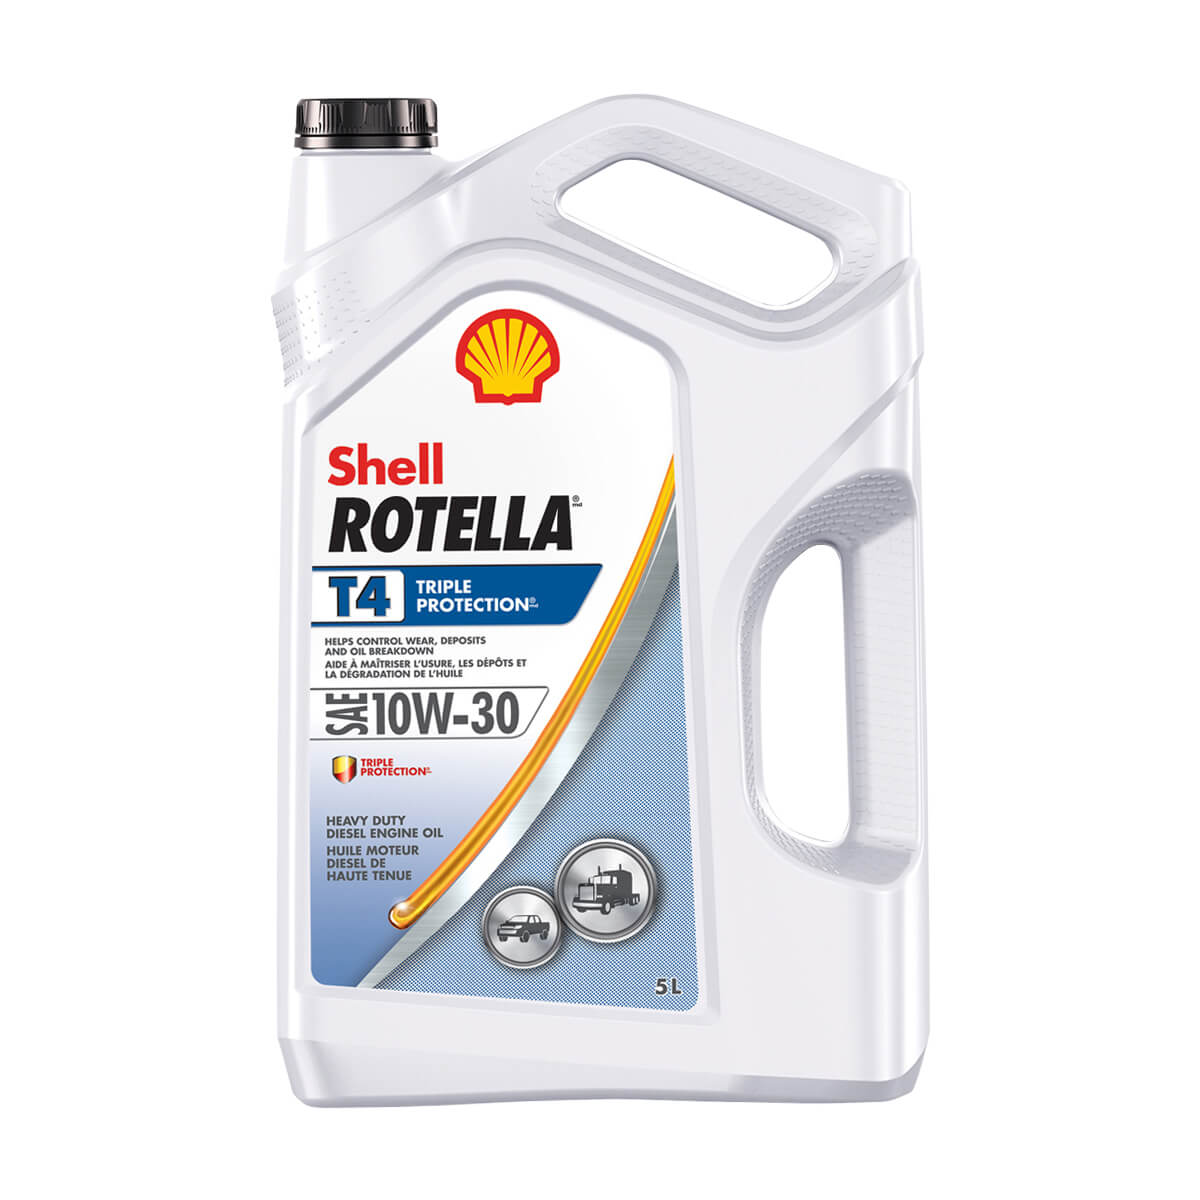 Shell Rotella T4 Triple Protection 10W-30 - 5L